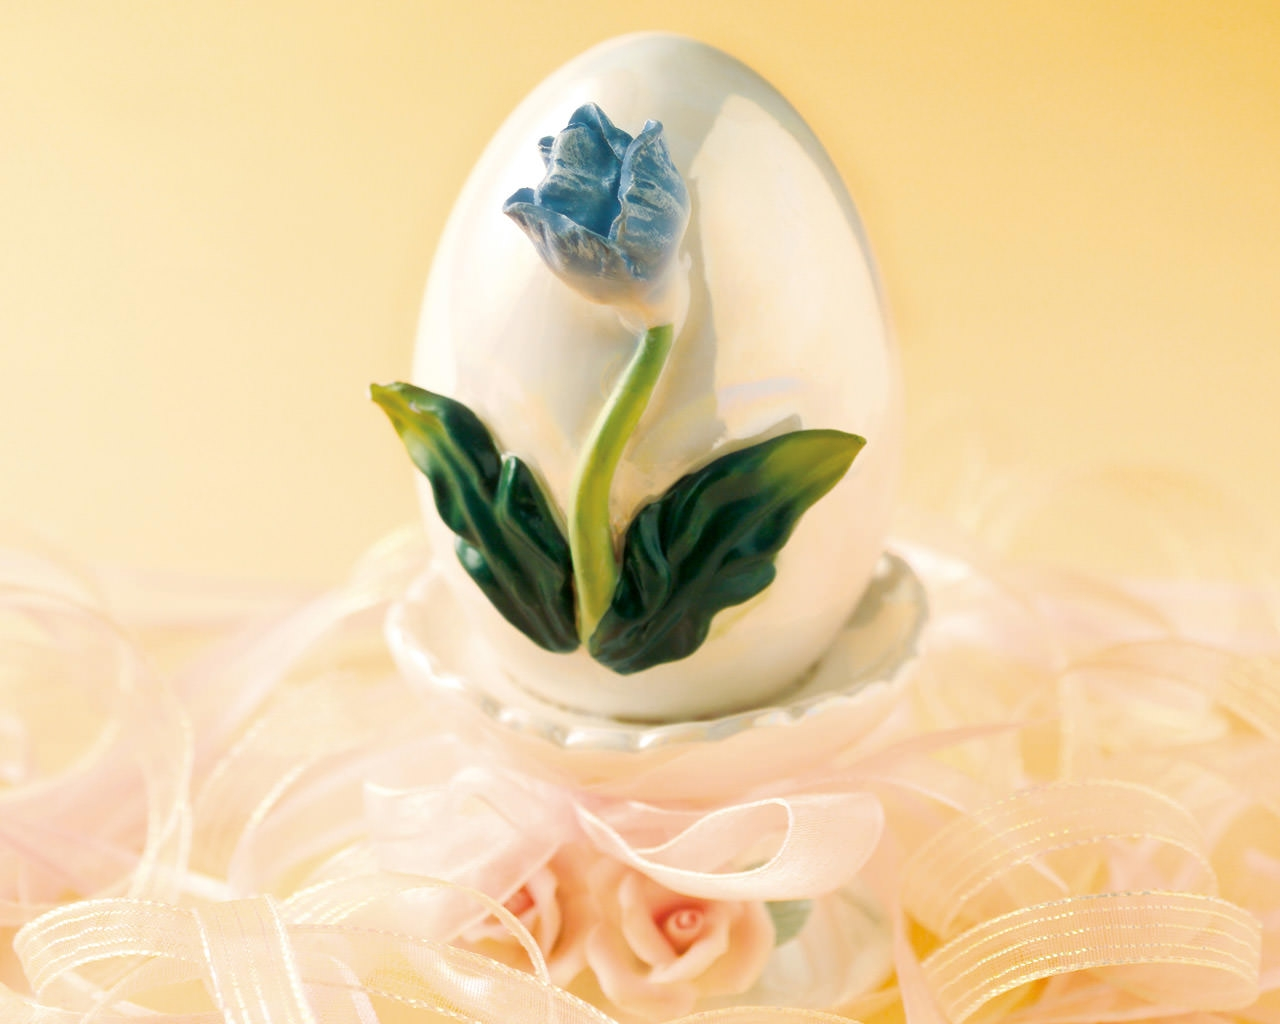 Flower On Egg Easter Wallpaper